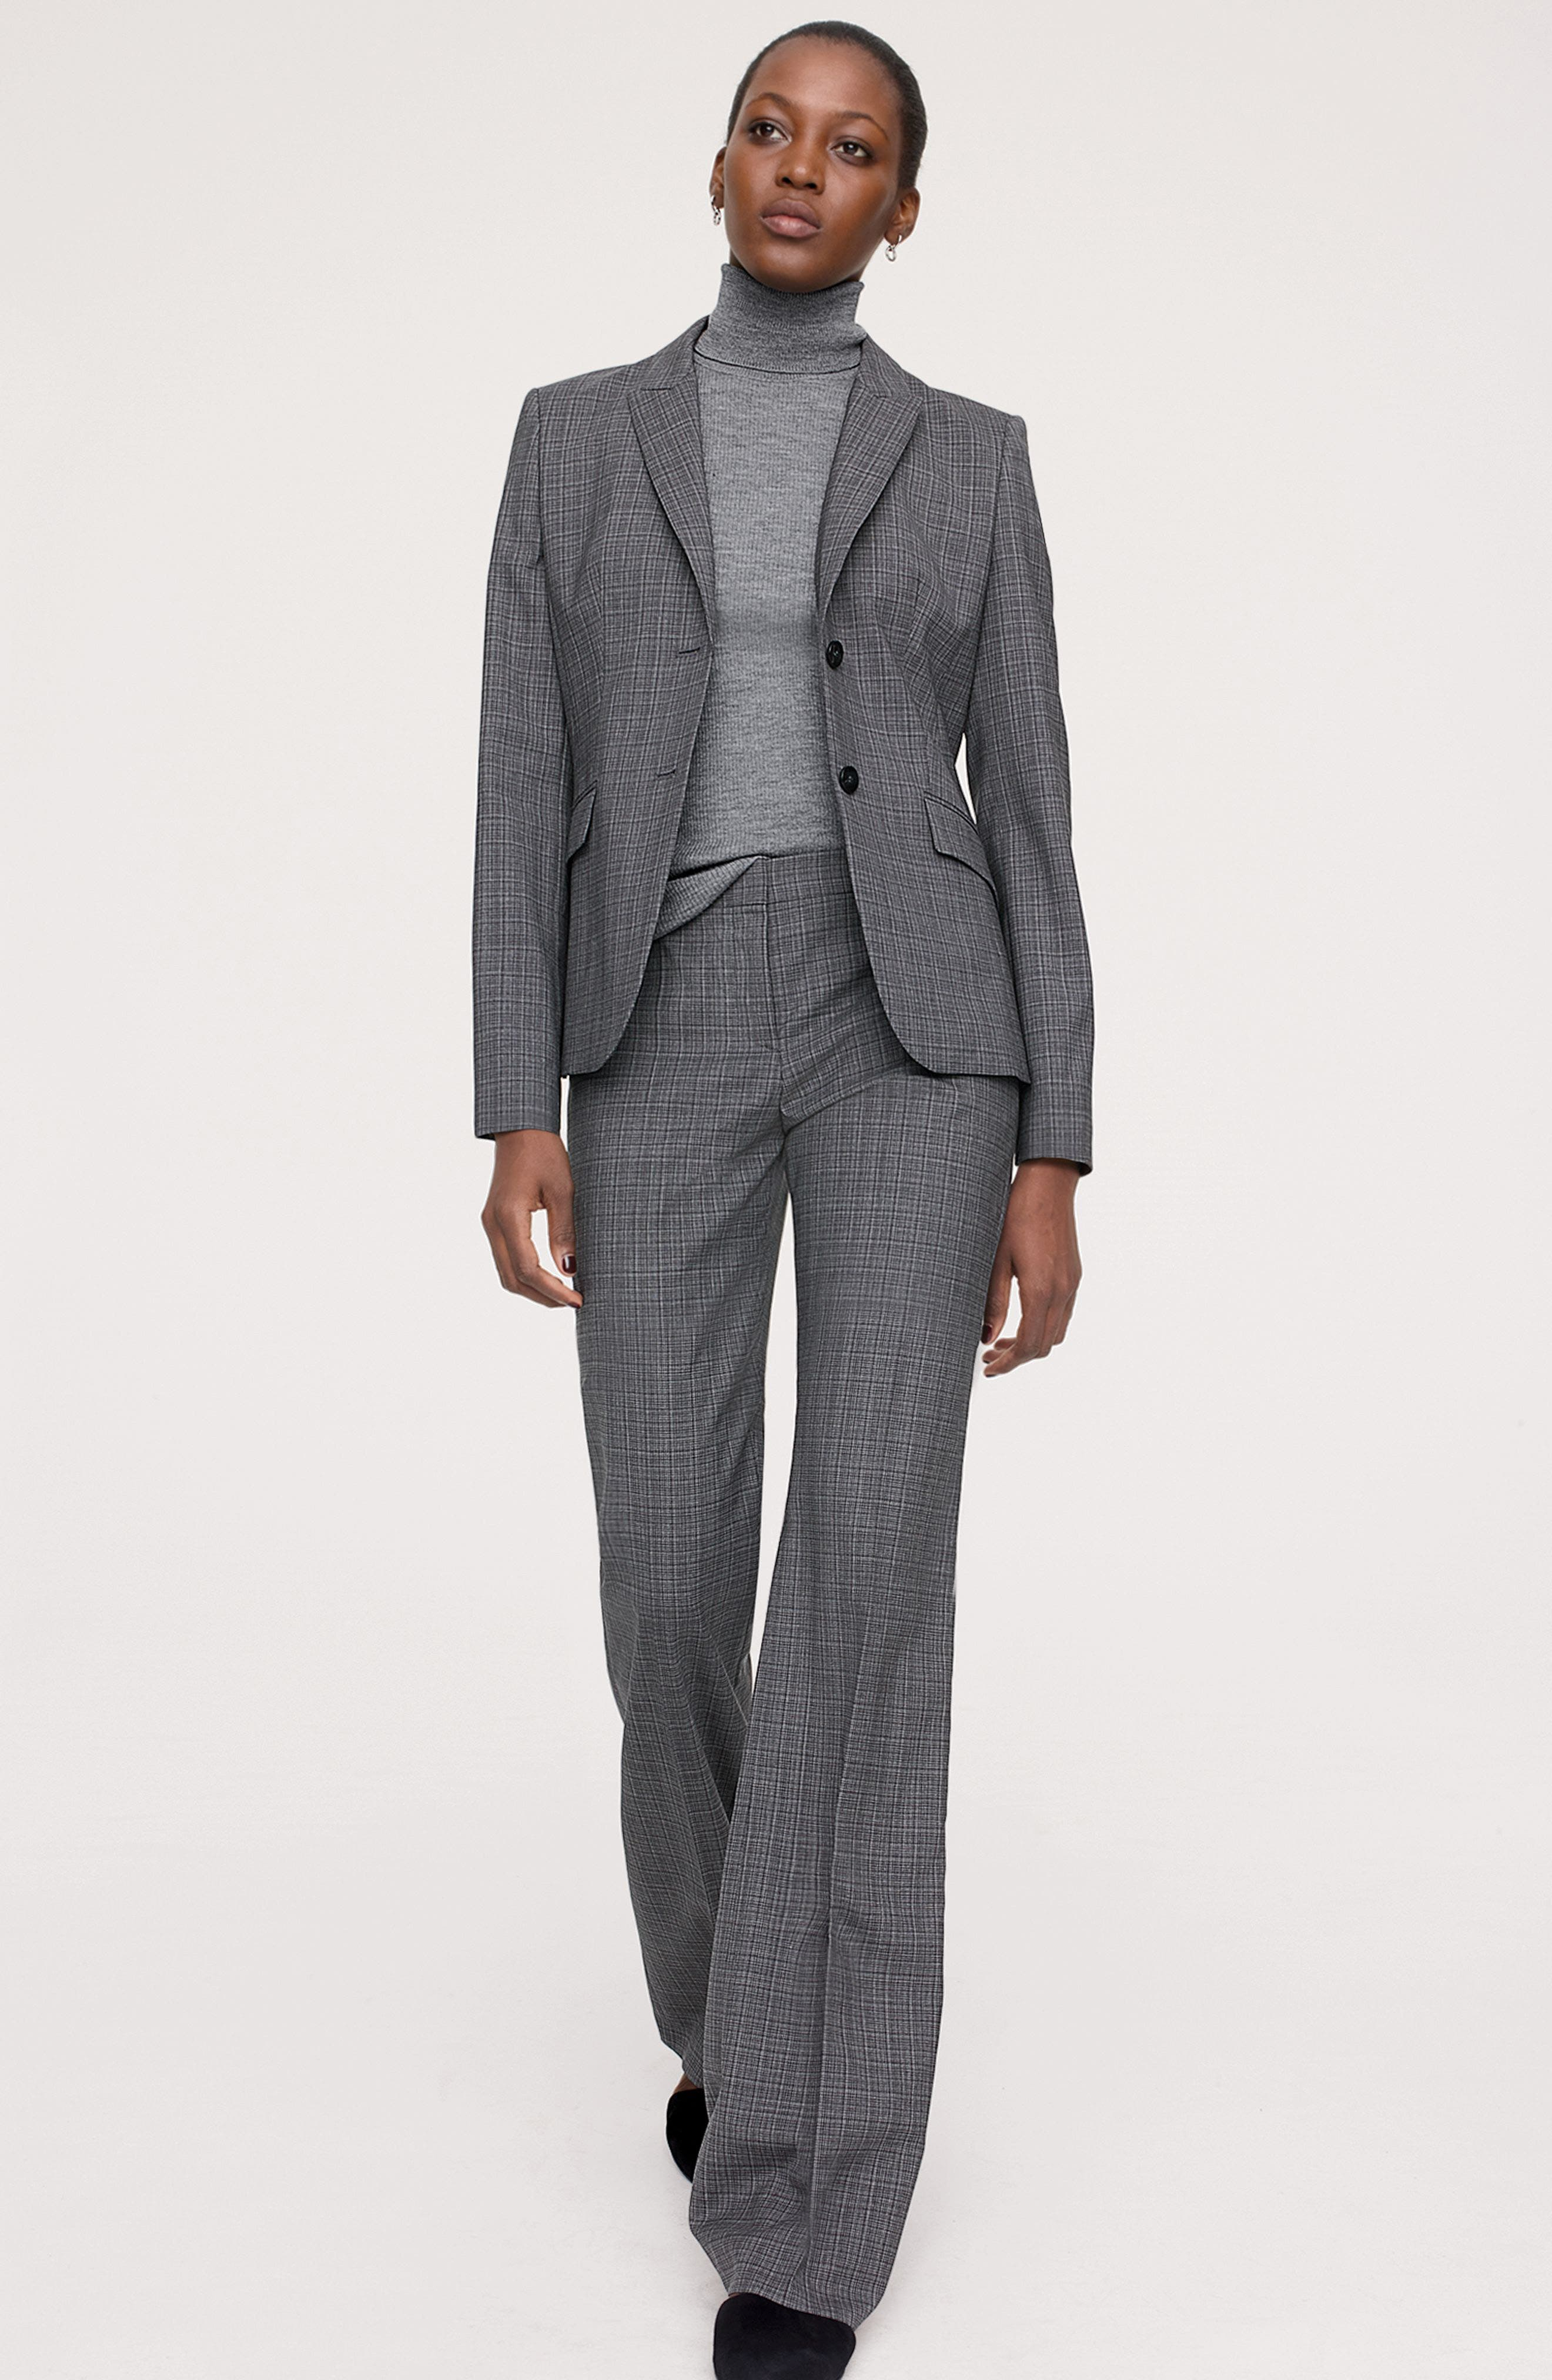 BOSS Stretch Wool Blazer & Trousers Outfit with Accessories